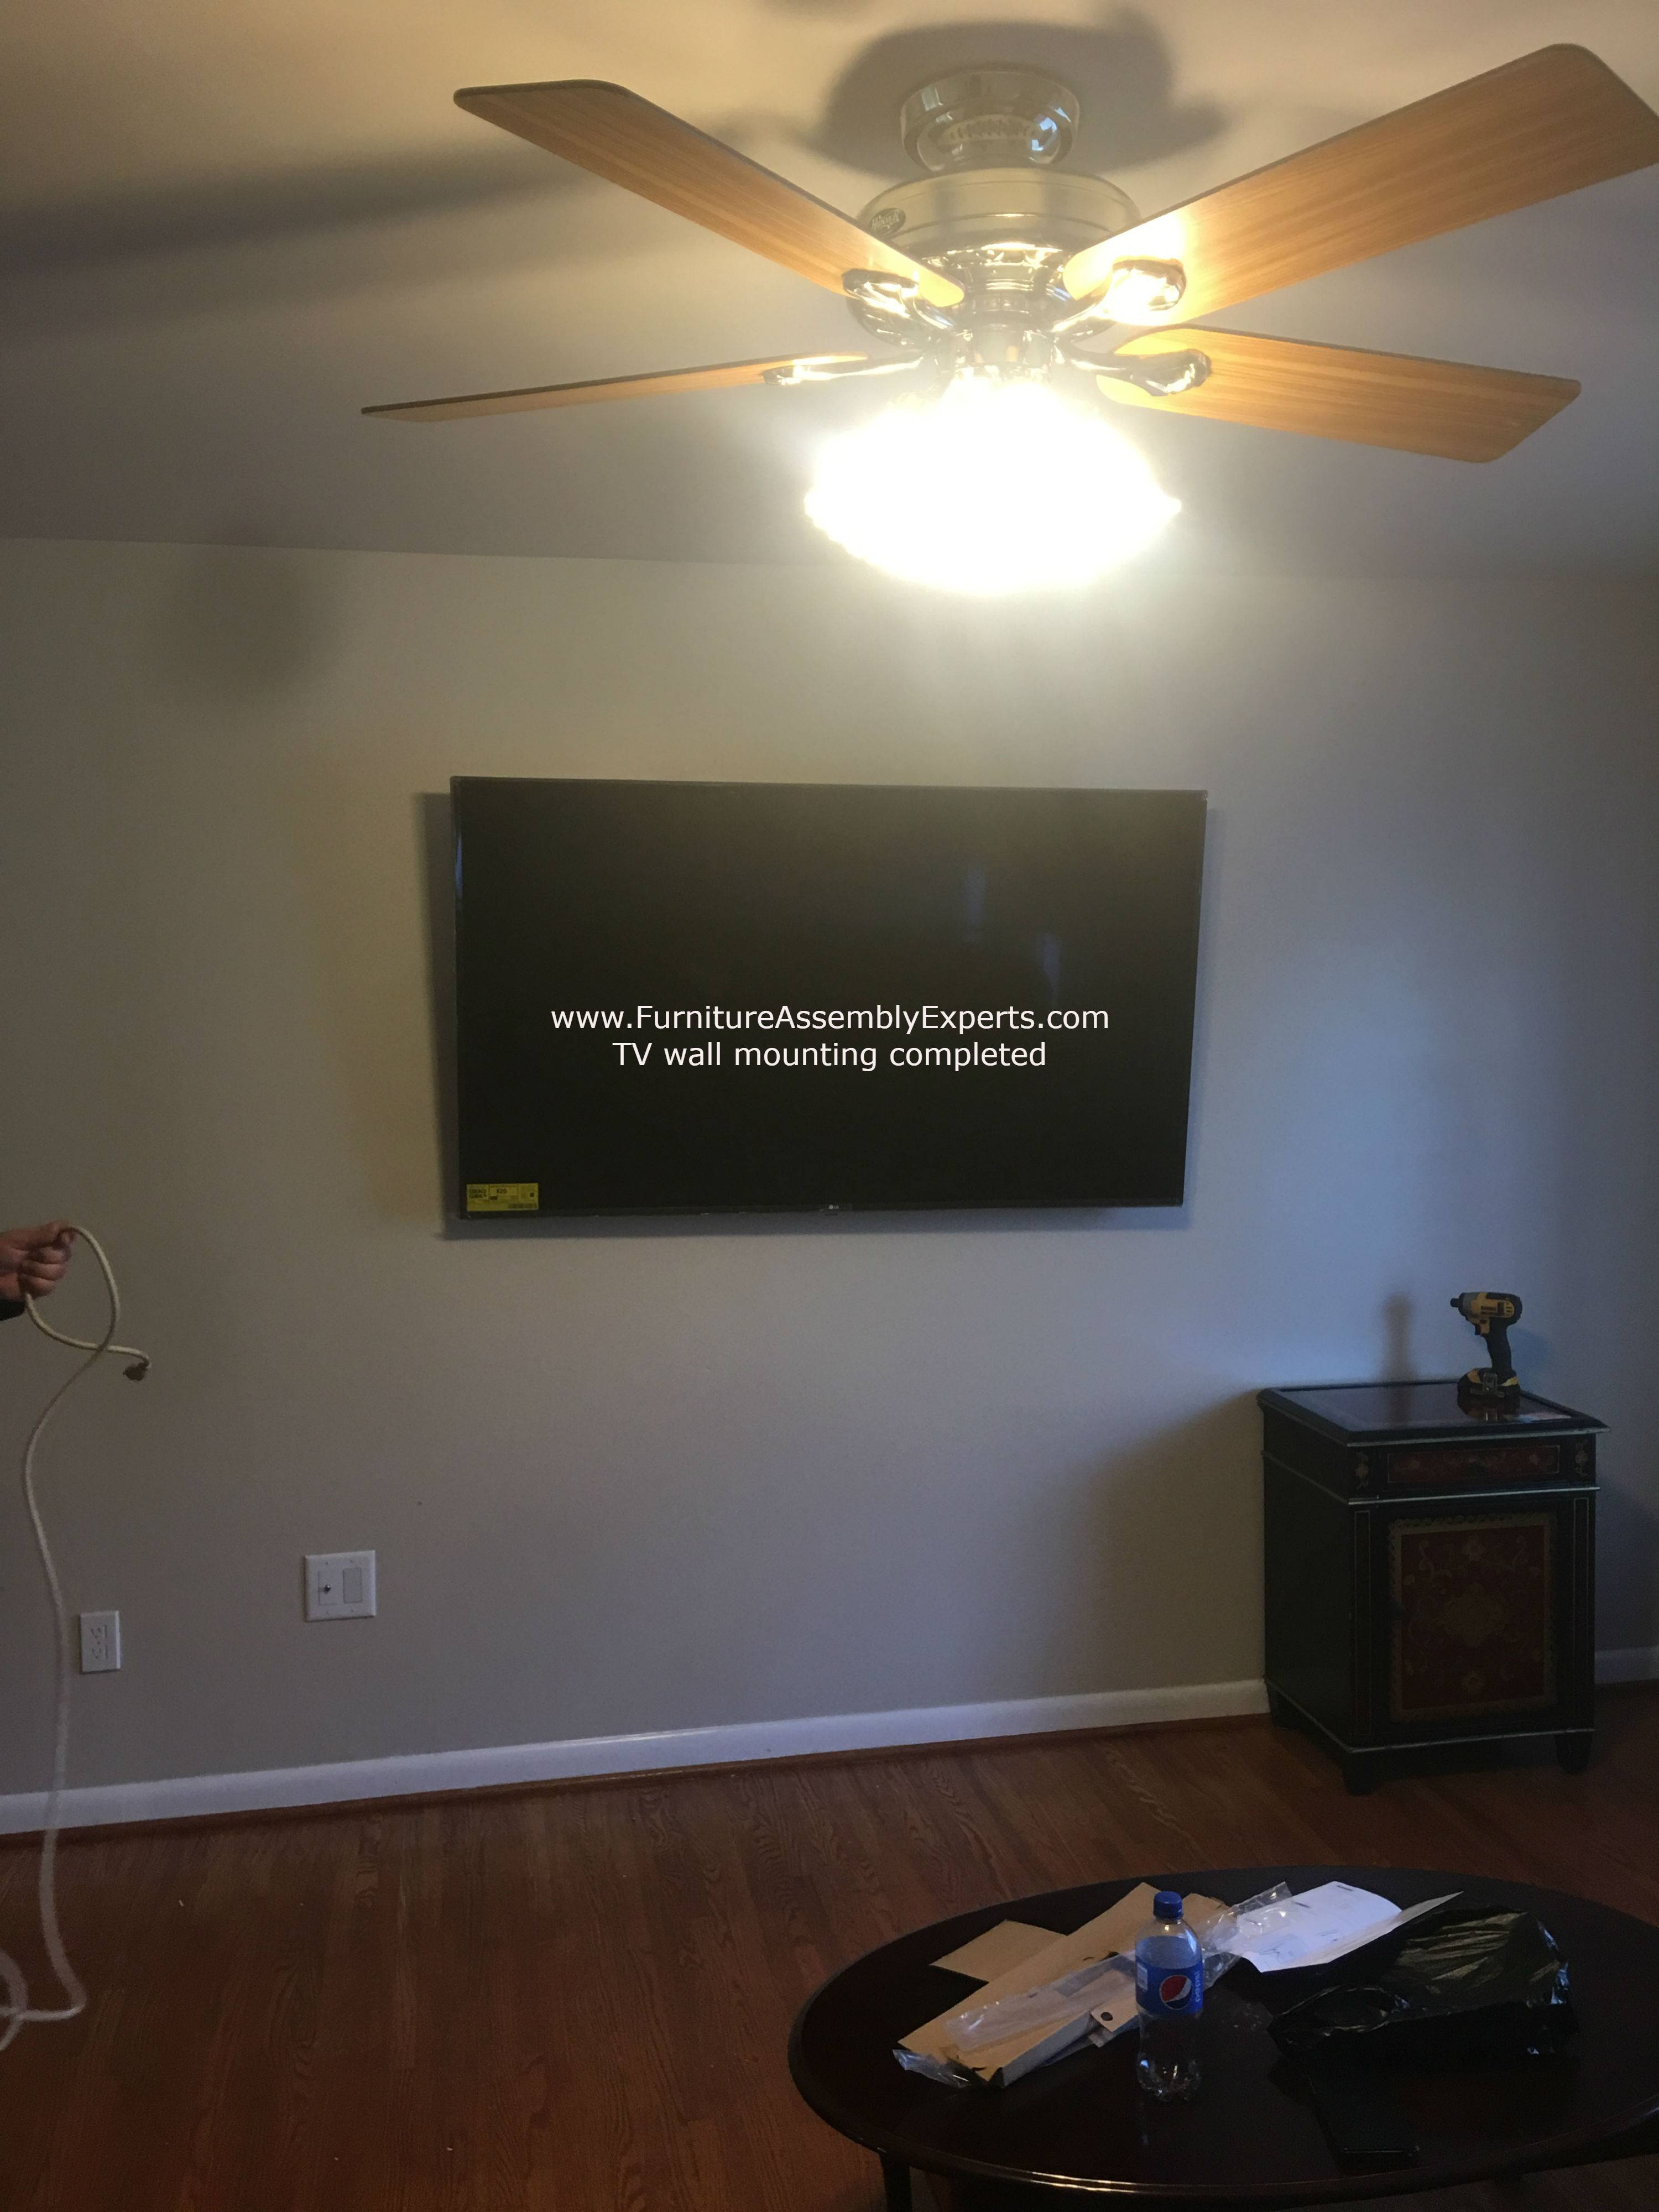 TV wall installation service in Montgomery county MD